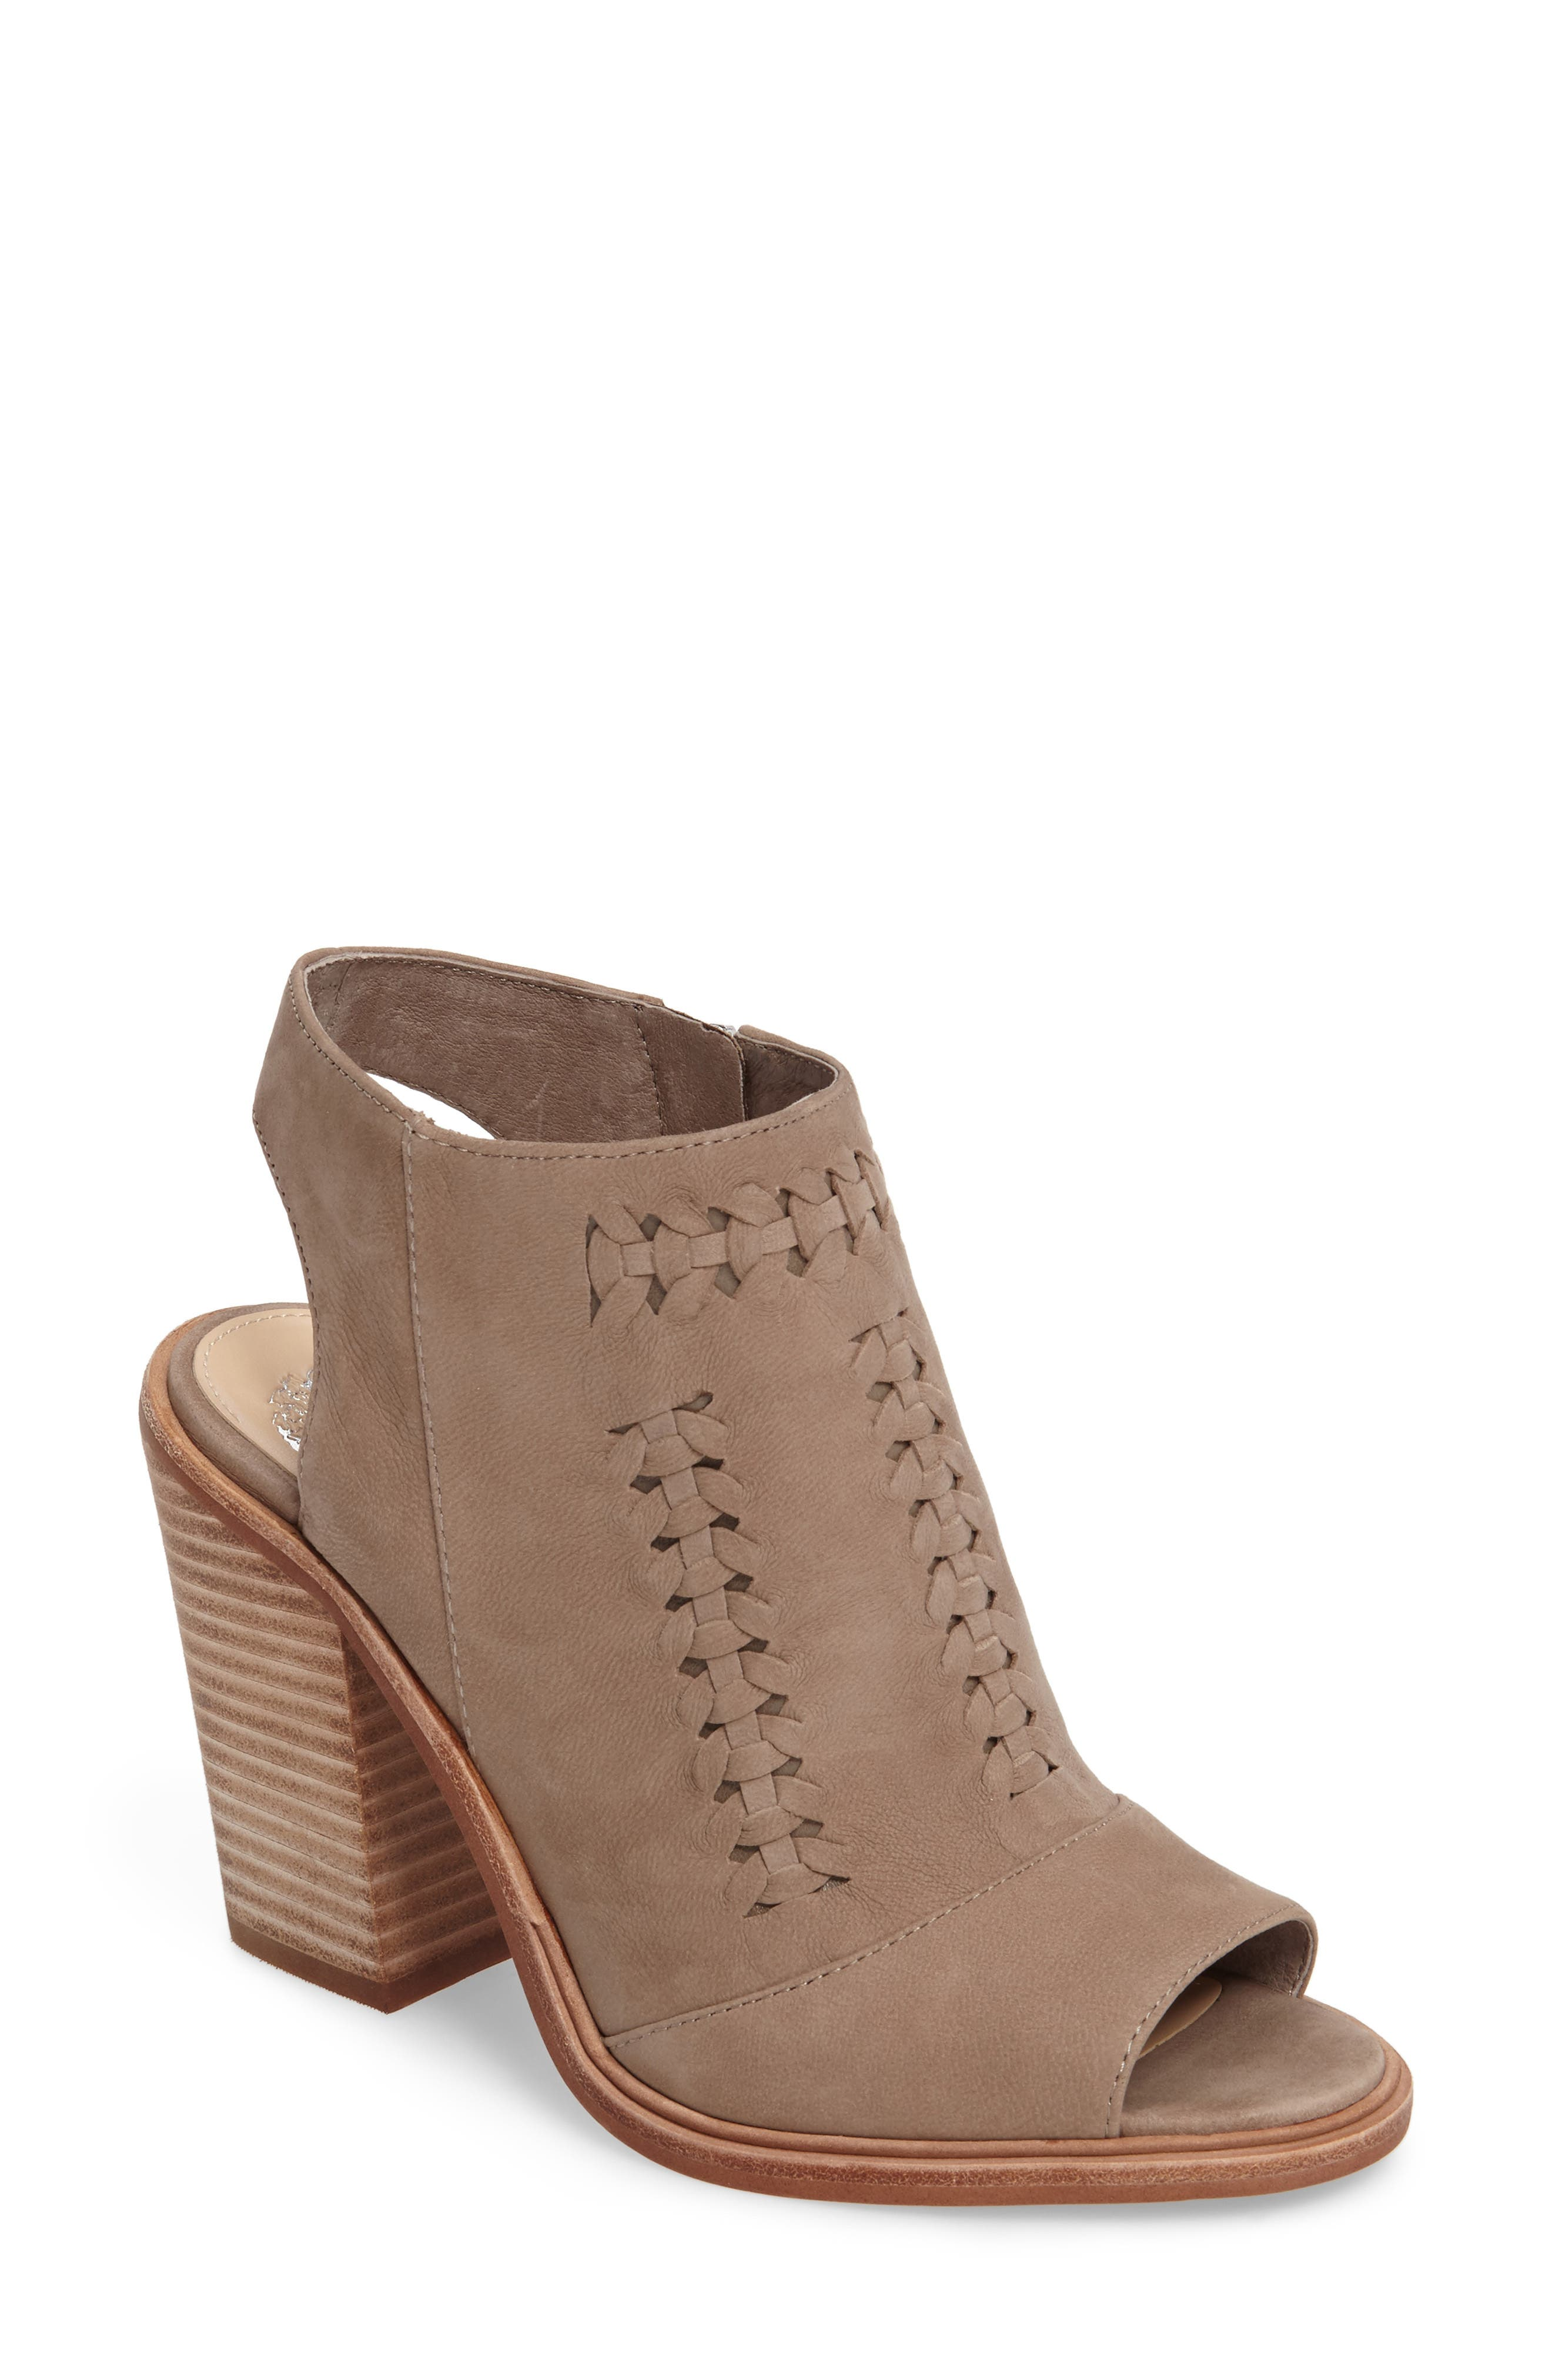 Alternate Image 1 Selected - Vince Camuto Katri Woven Bootie (Women) (Nordstrom Exclusive)